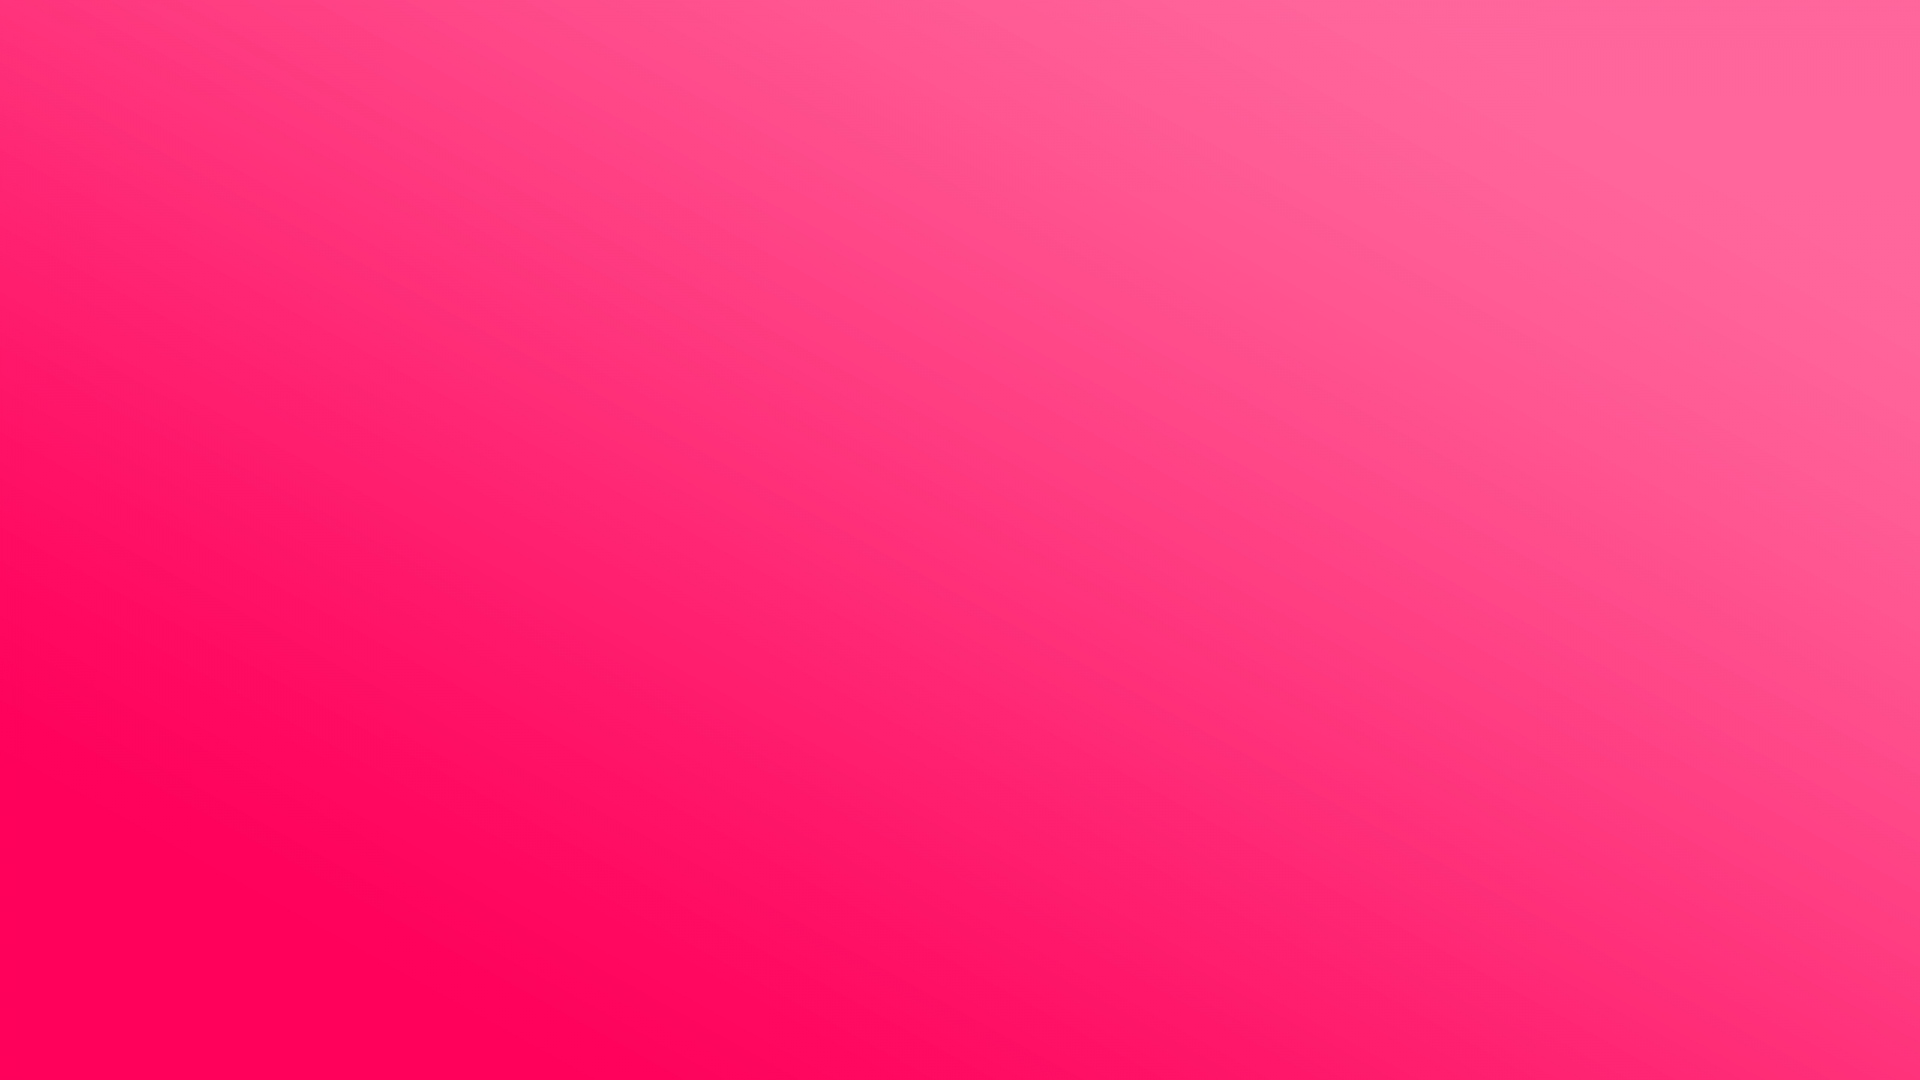 Free stock photos of pink background  Pexels